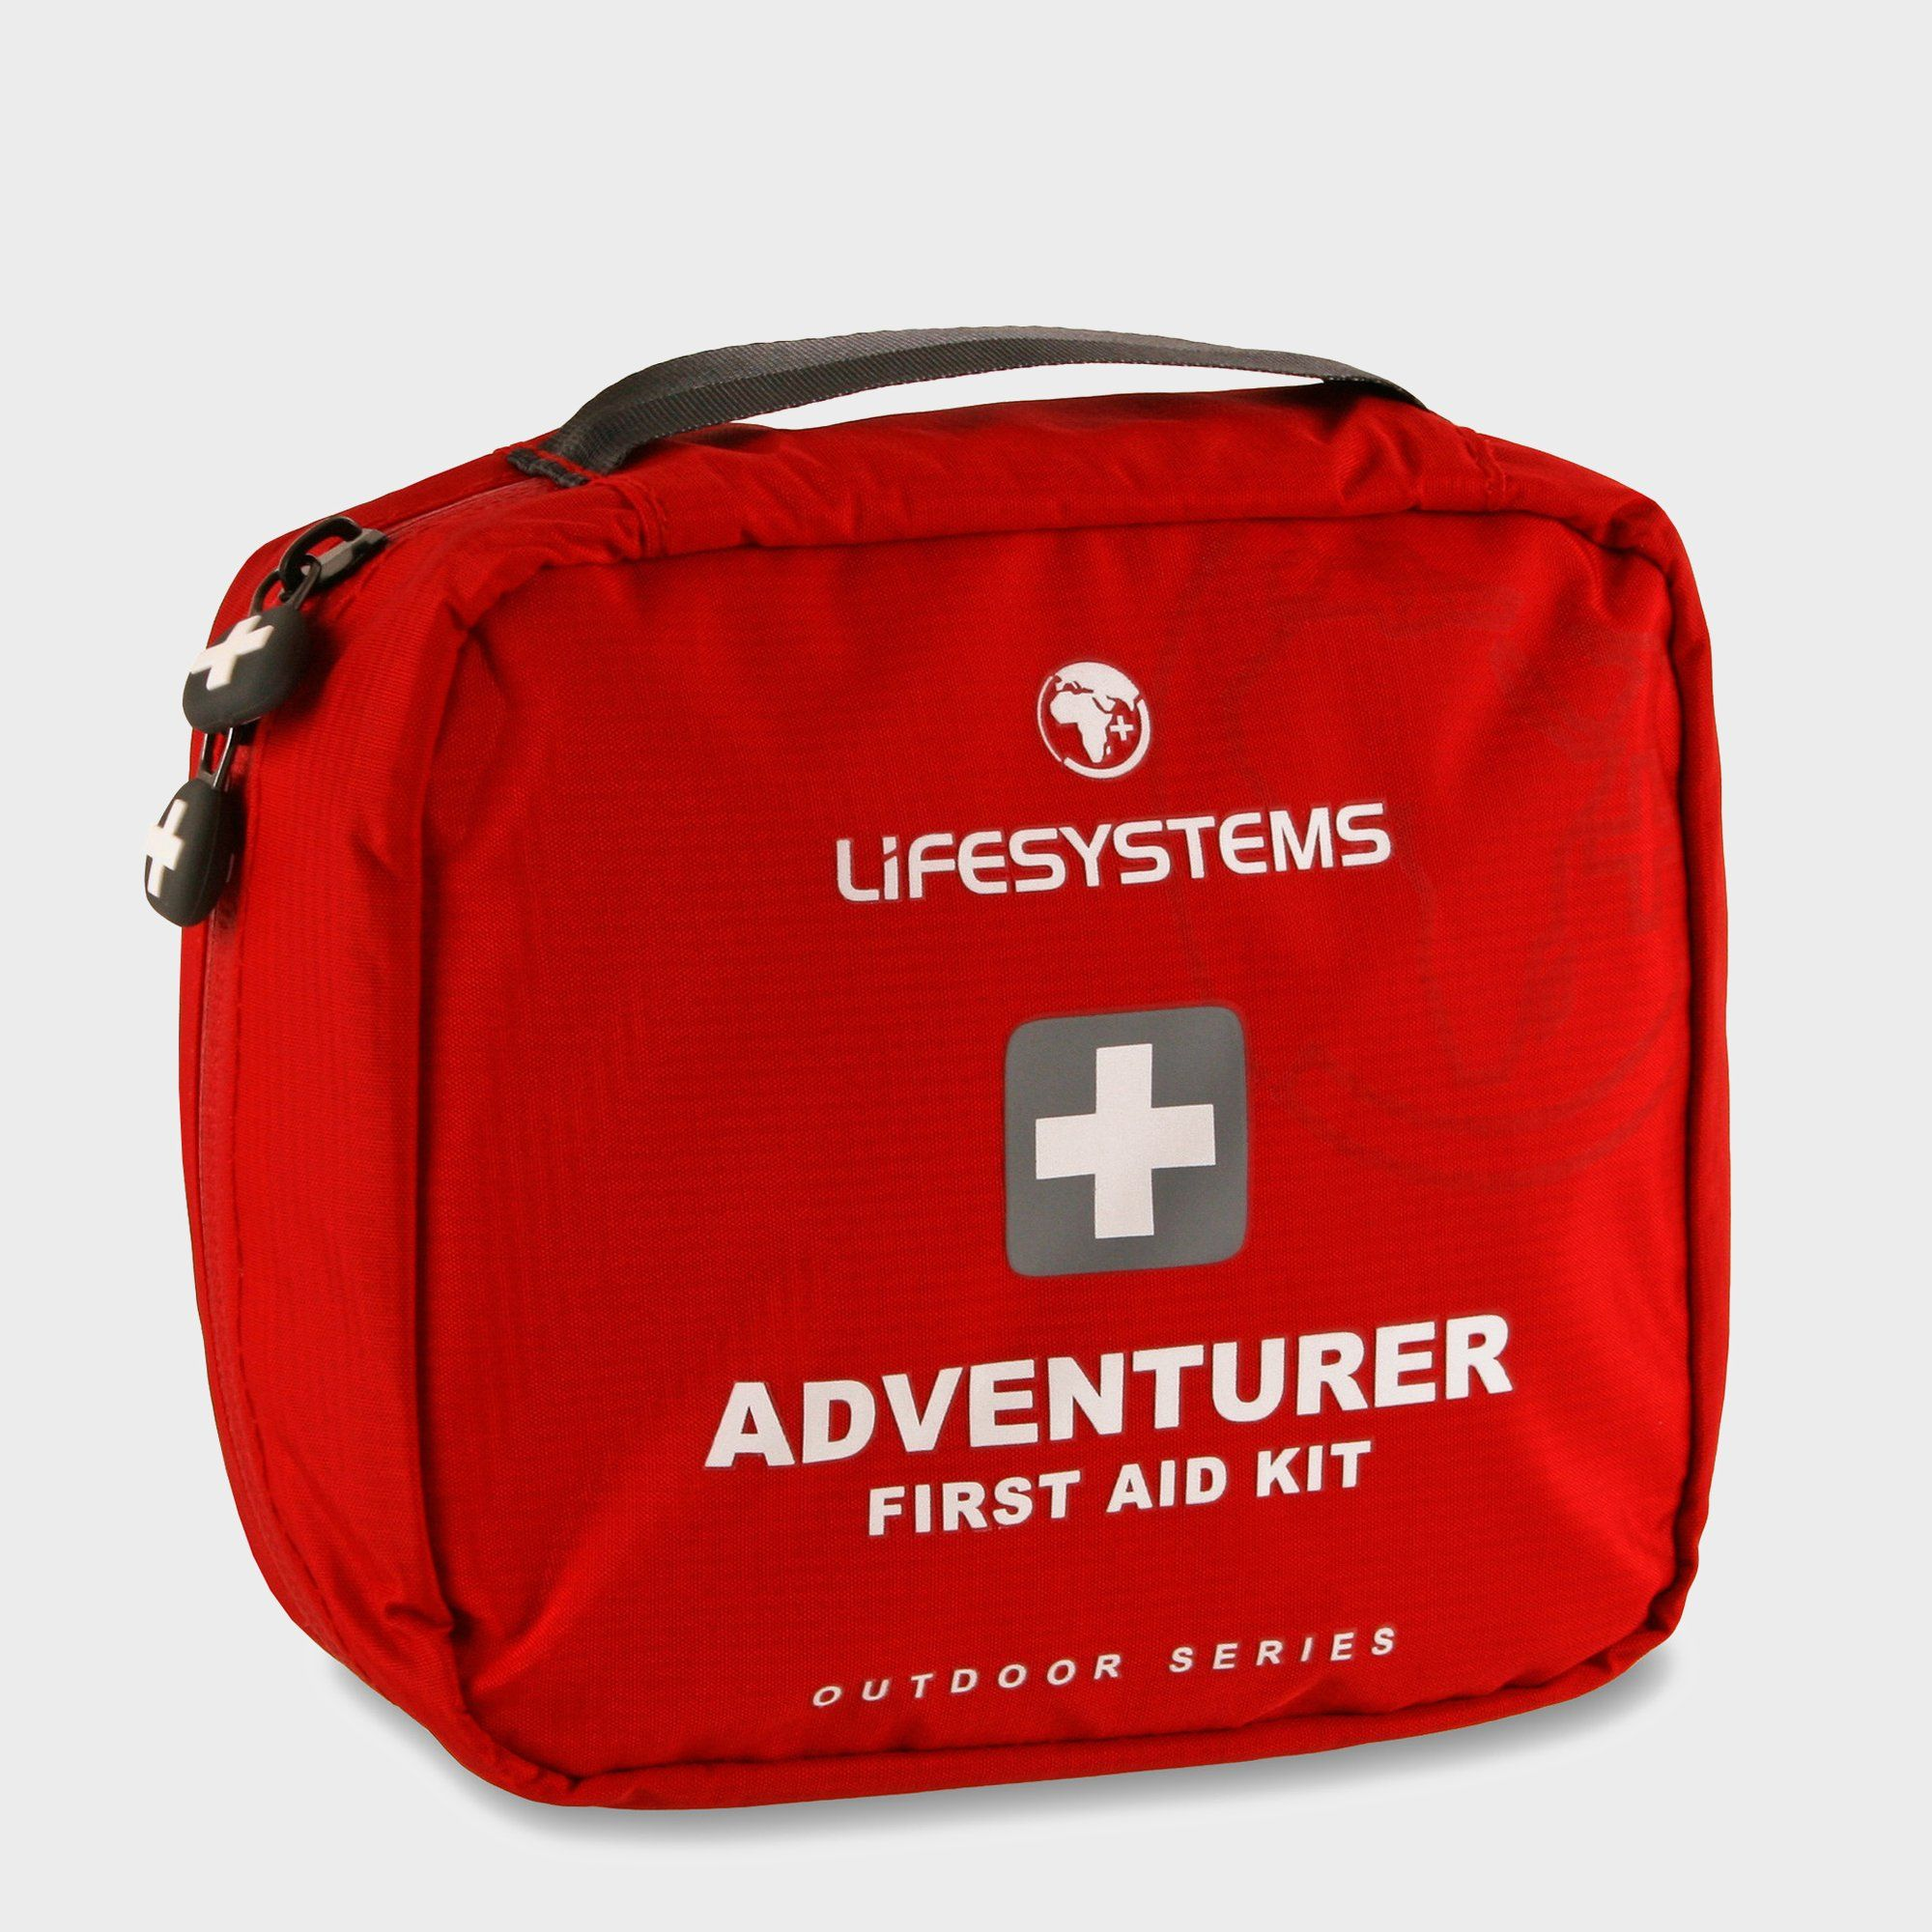 LIFESYSTEMS Adventurer First Aid Kit